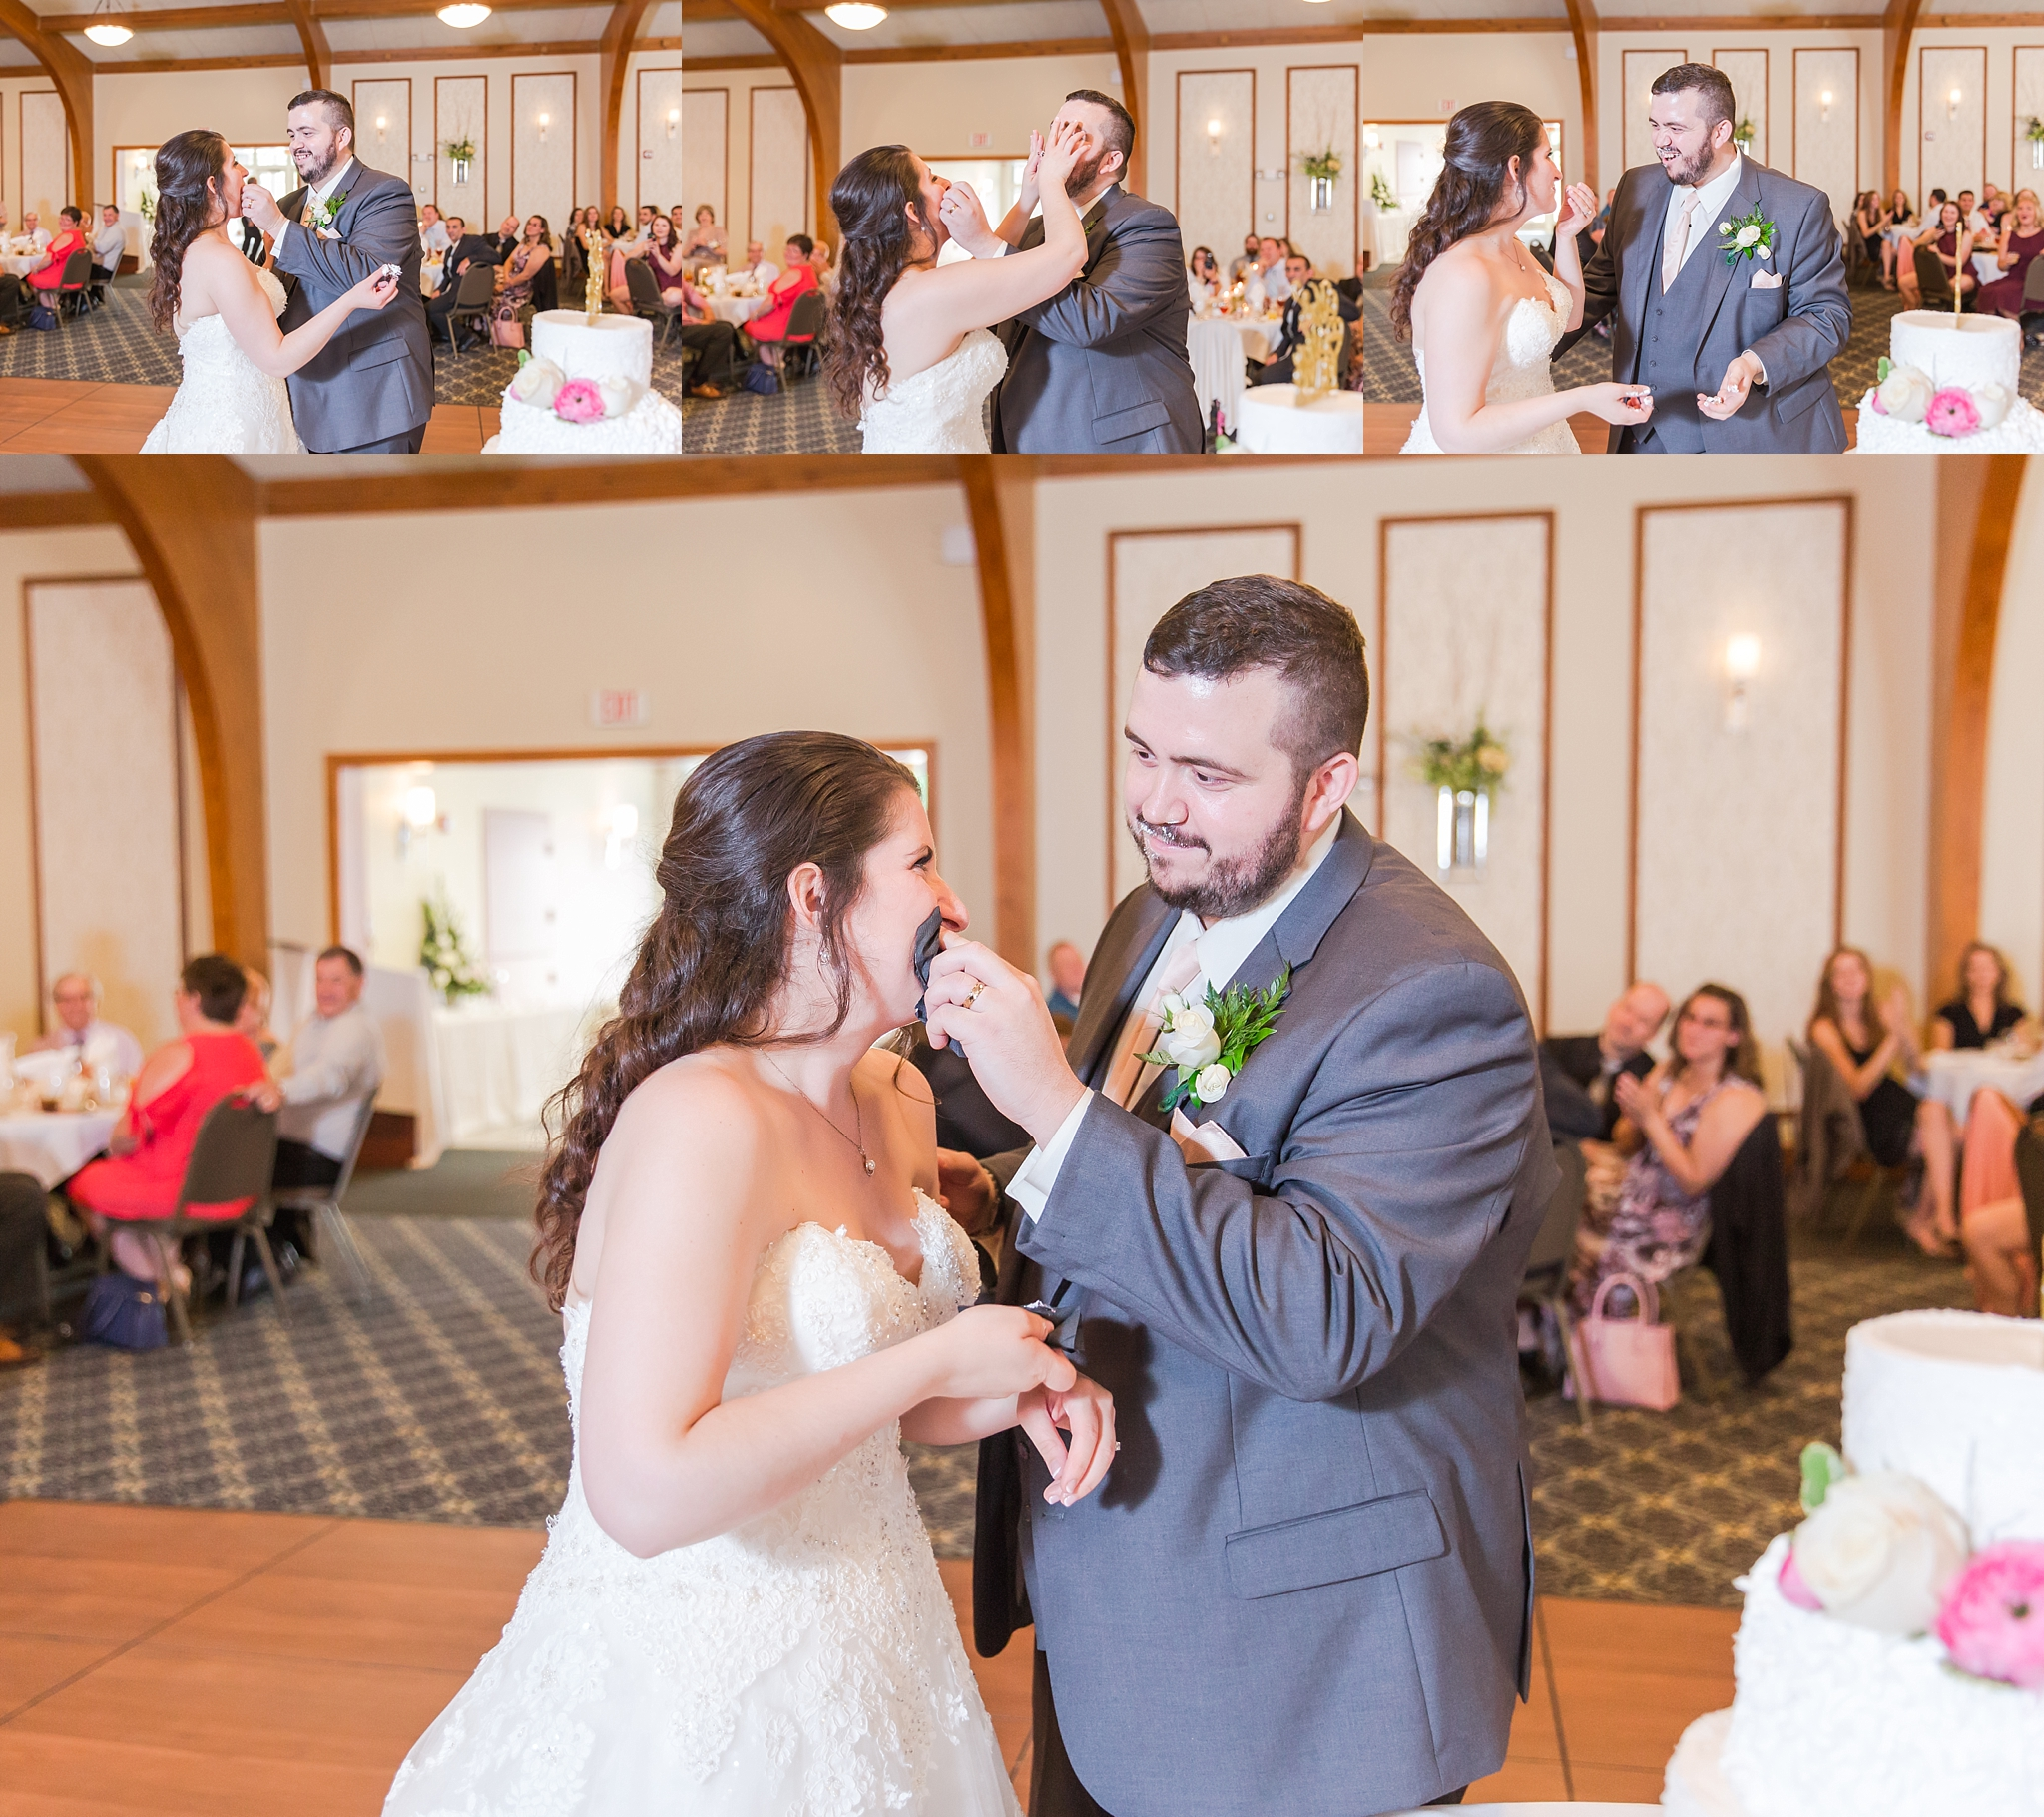 emotional-laid-back-romantic-wedding-photos-at-adrian-college-herrick-chapel-in-adrian-michigan-by-courtney-carolyn-photography_0061.jpg